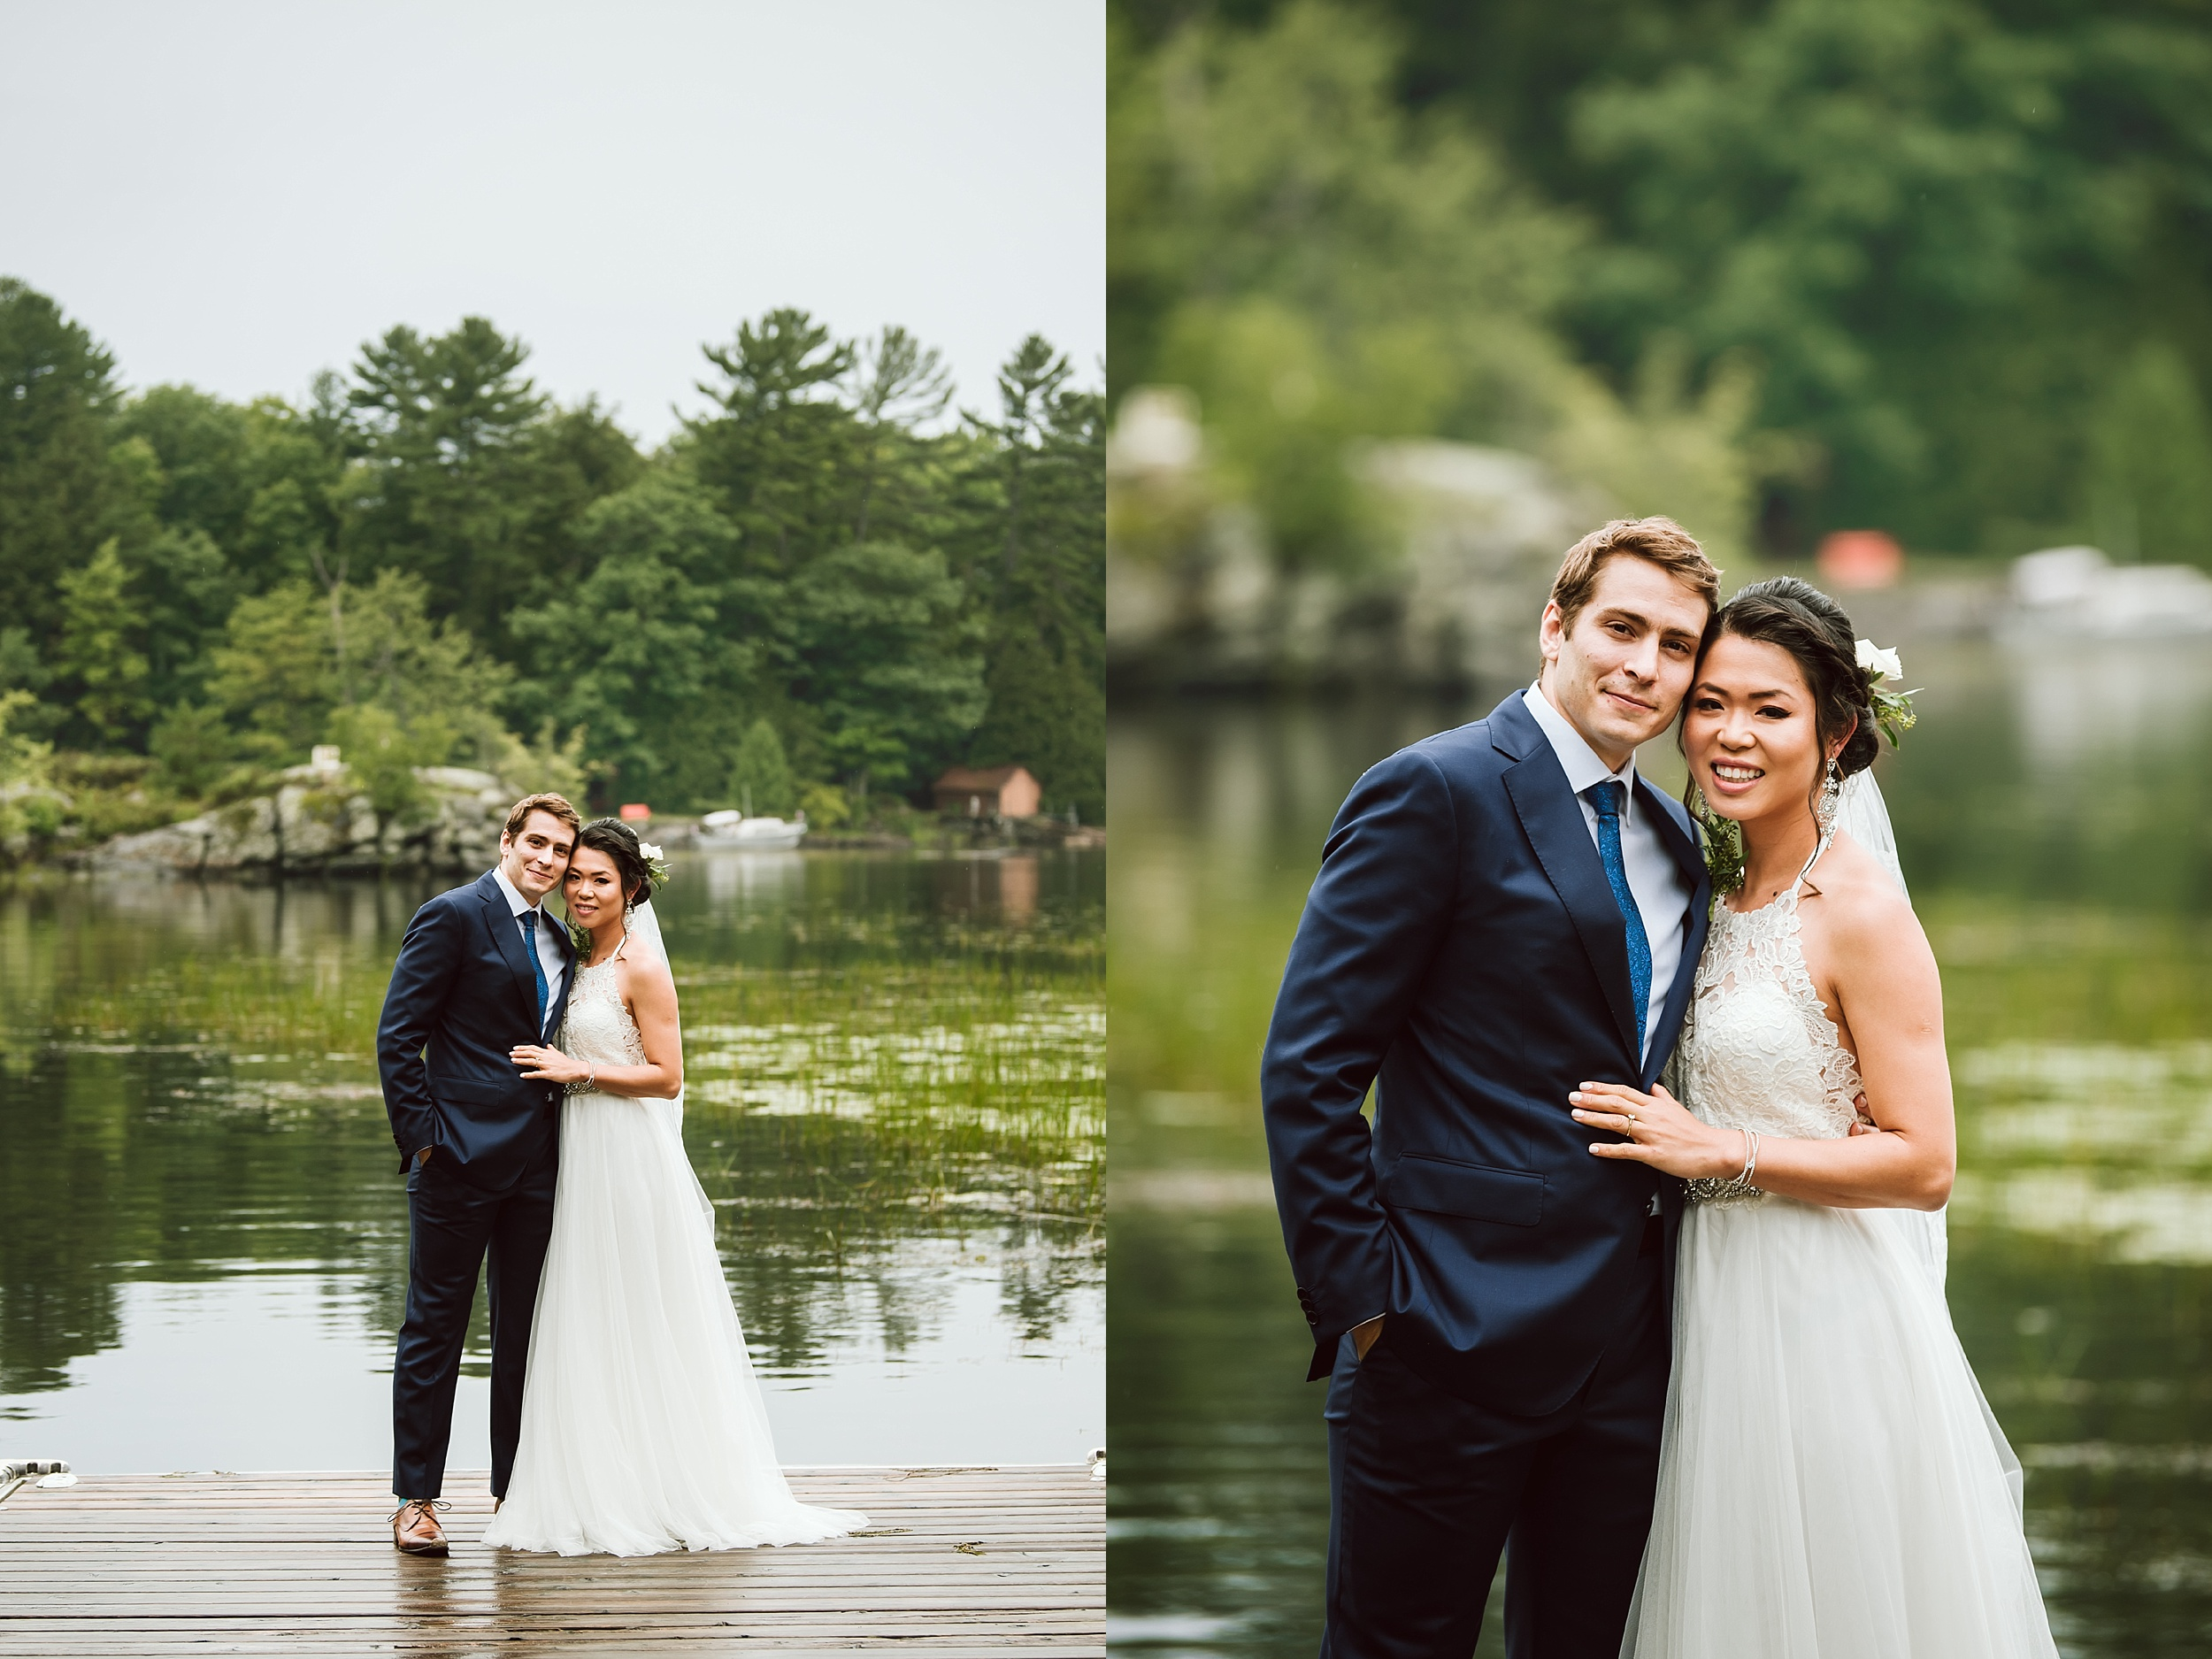 Muskoka_Wedding_Photographer_Gravenhurst0022.jpg